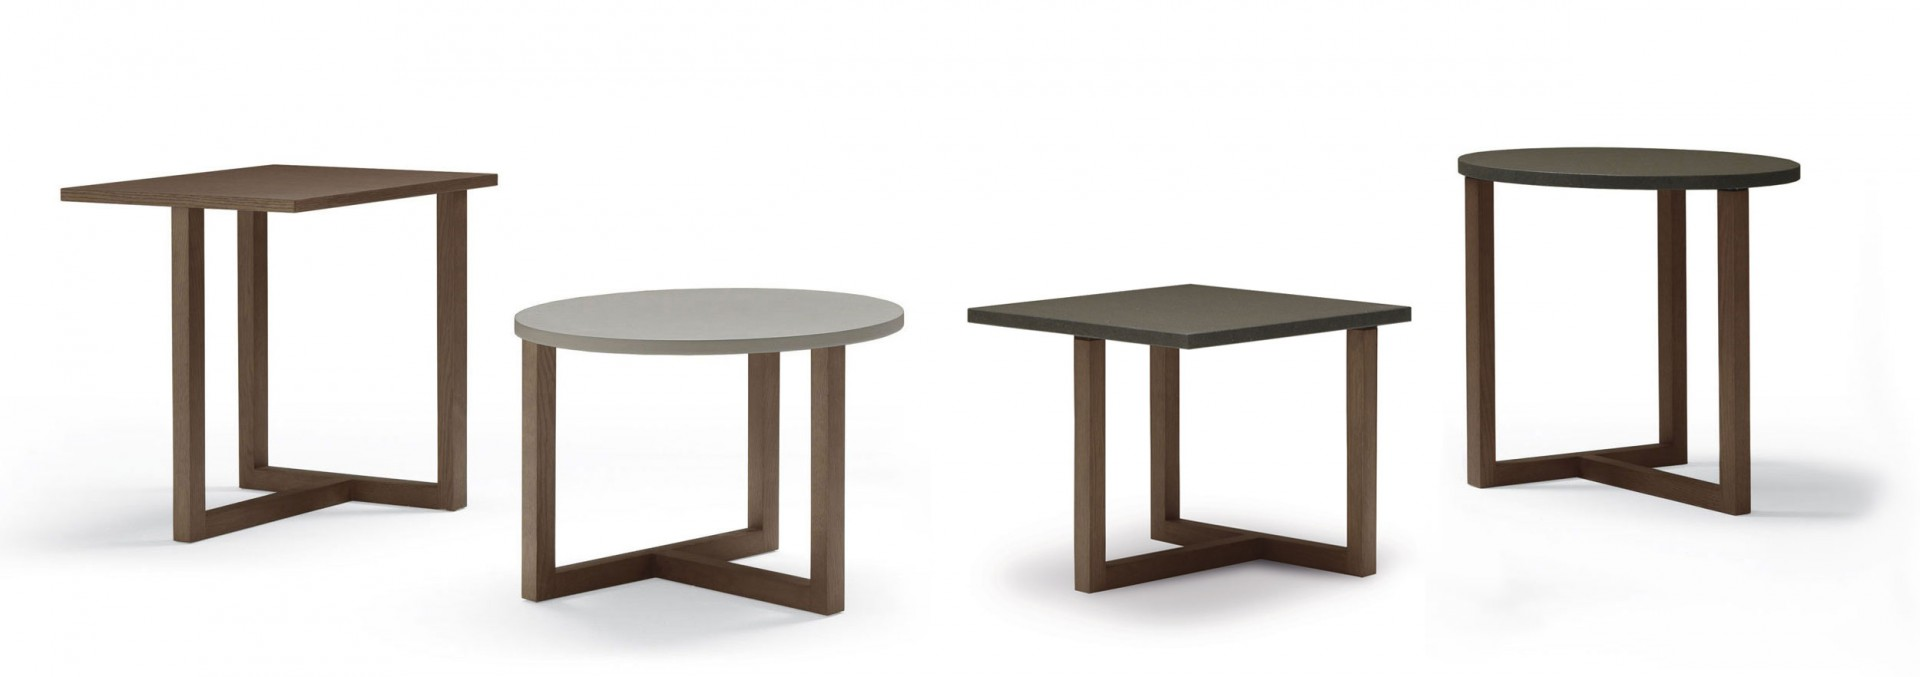 MisuraEmme Hill Small Table Collection